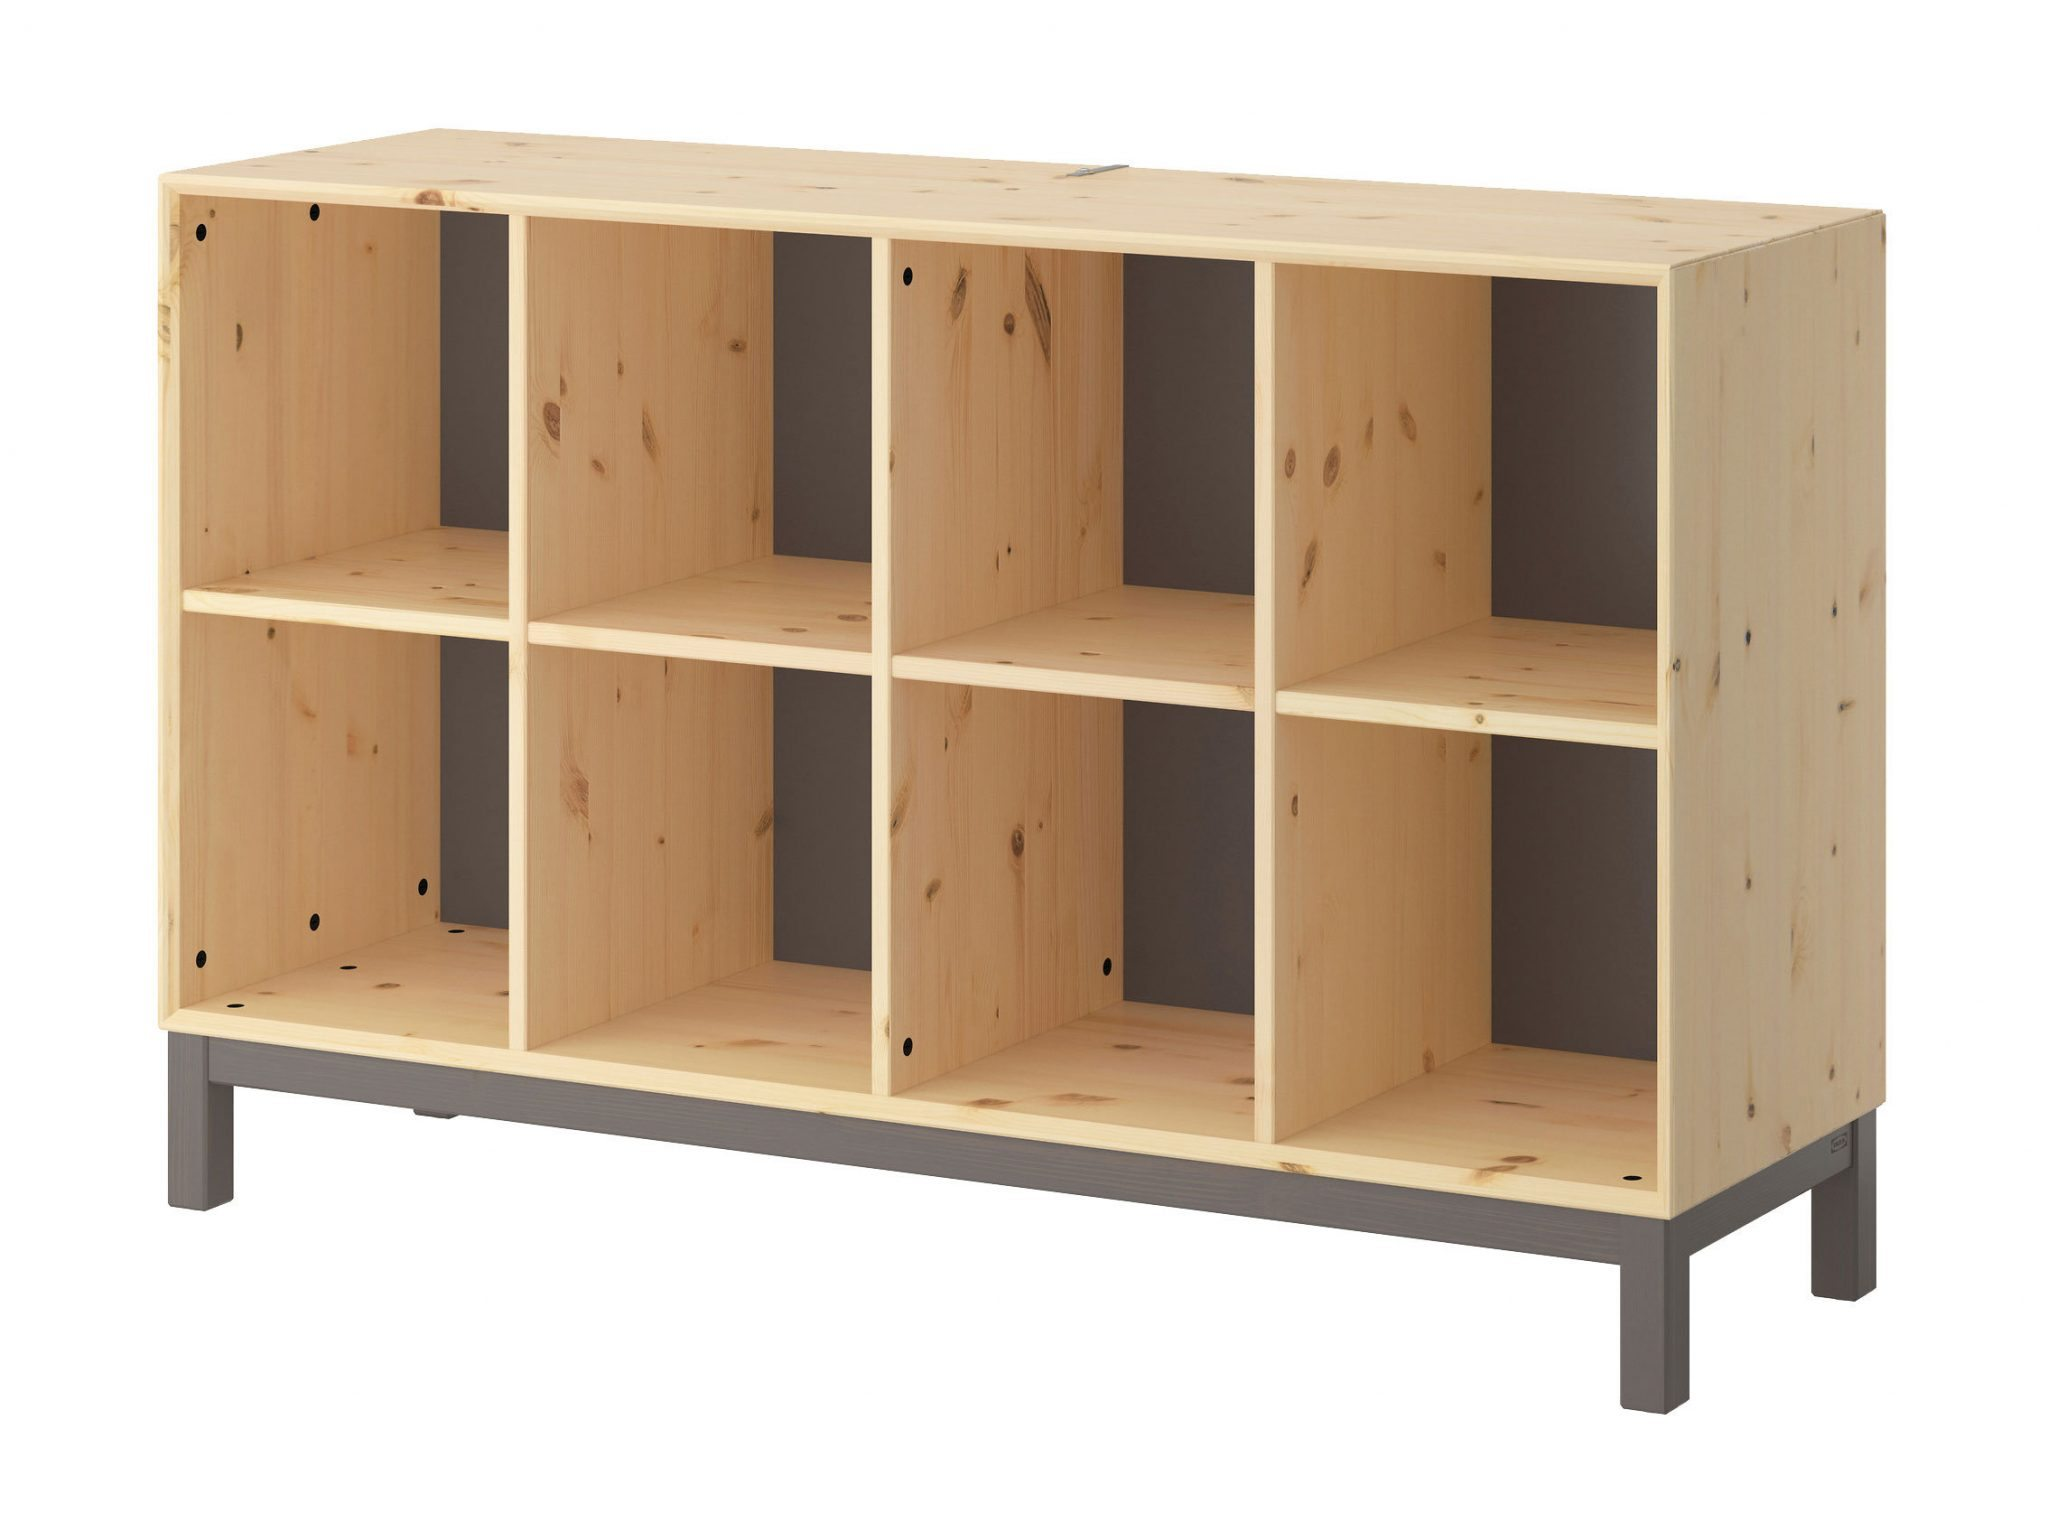 Ikea Expedit Ovet Ikea NornÄs The Solid Wood Expedit Alternative For Djs Djworx